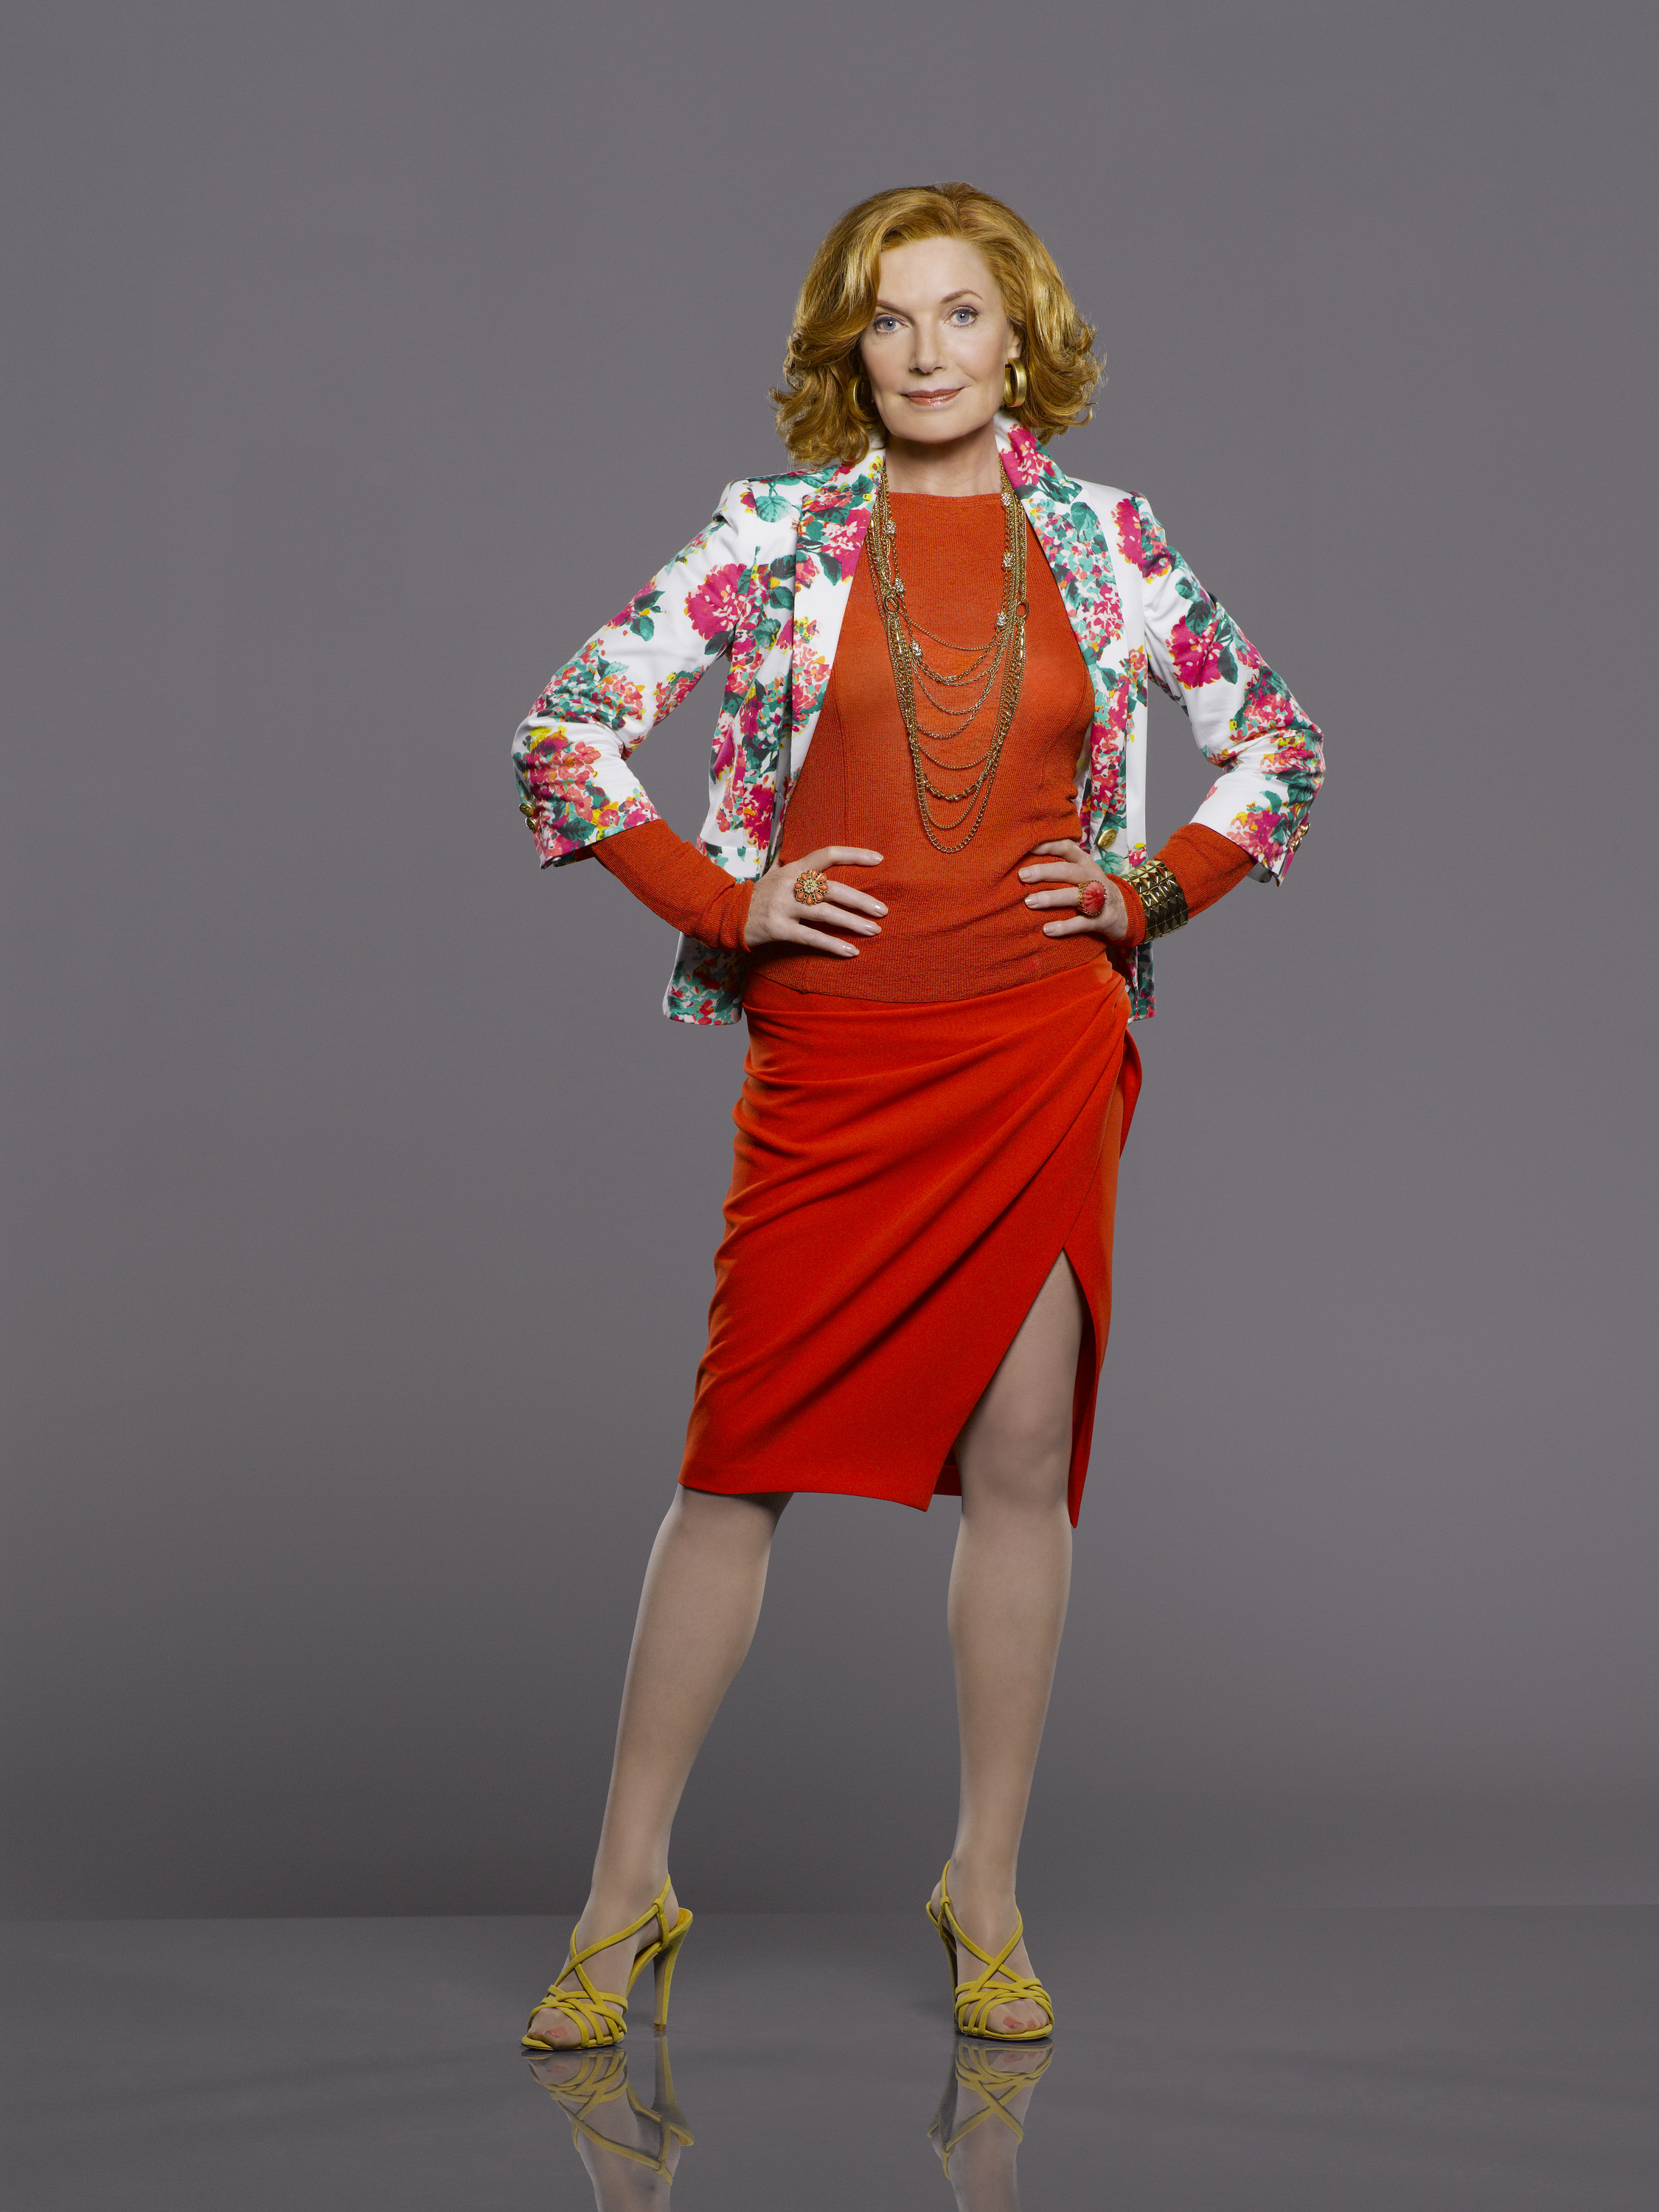 susan sullivan photos